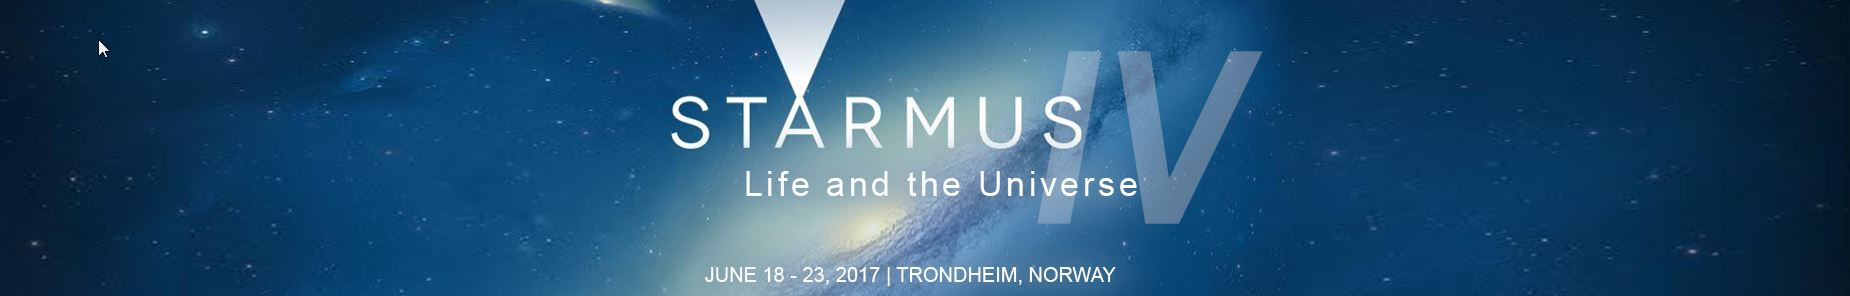 STARMUS – Life and the Universe